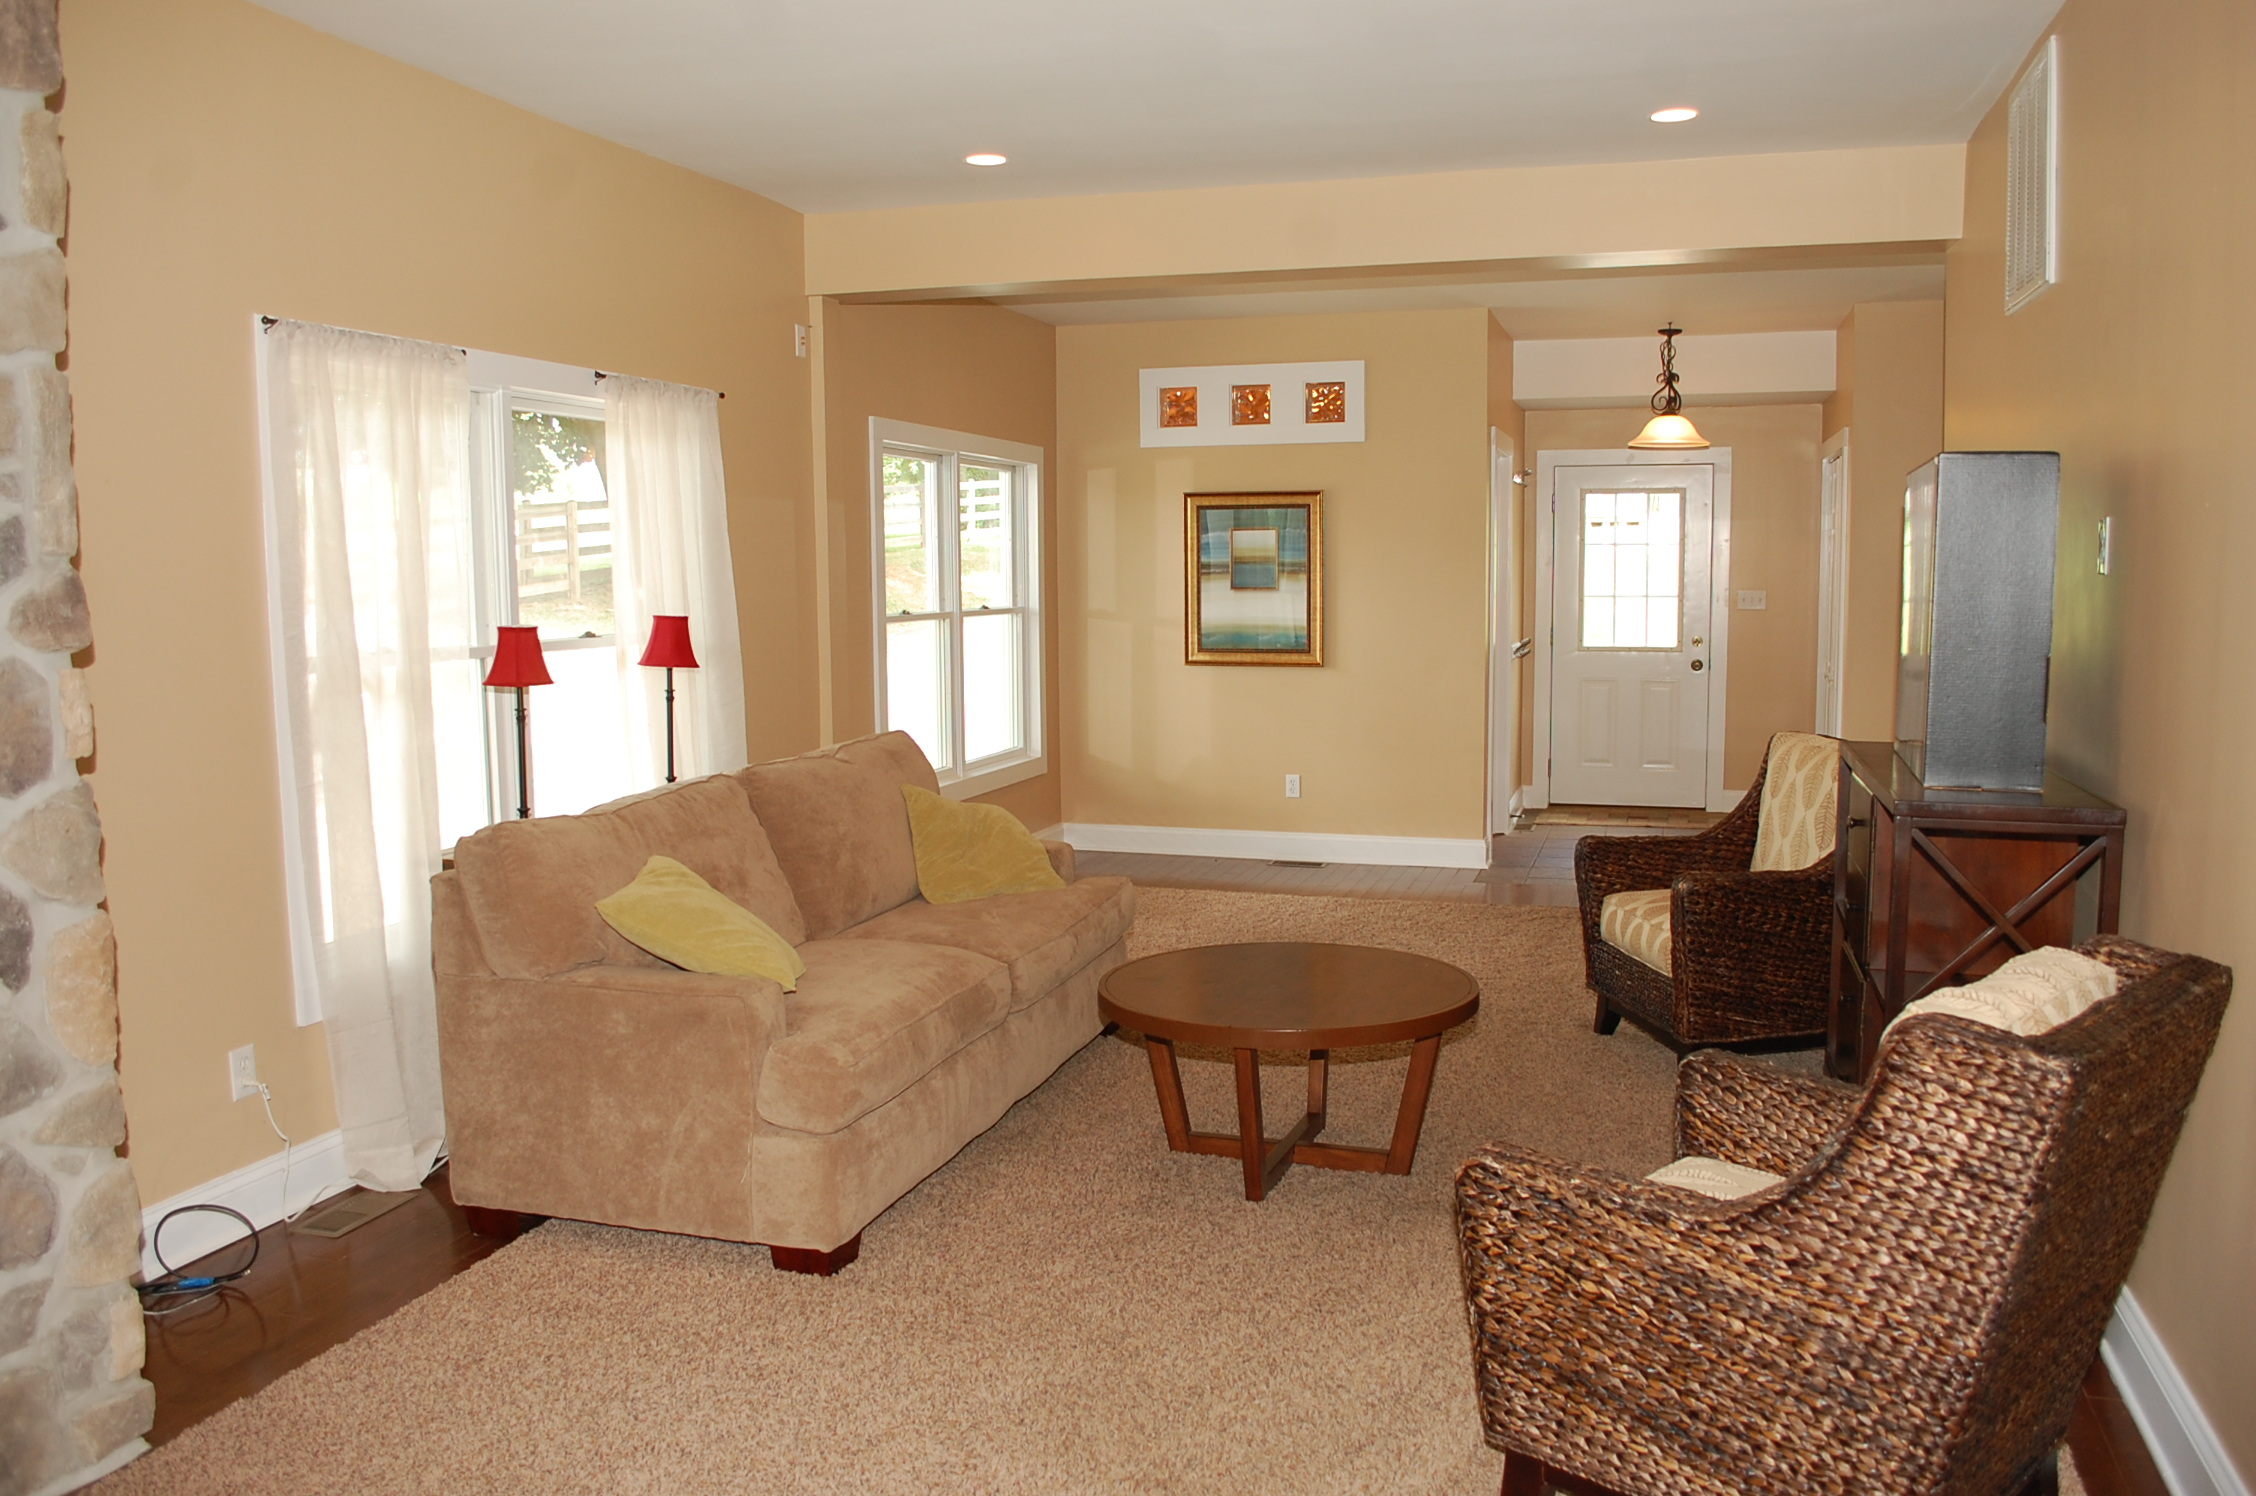 Staged Family Room In Vacant Home The Welcome Home Interior Design Solutio